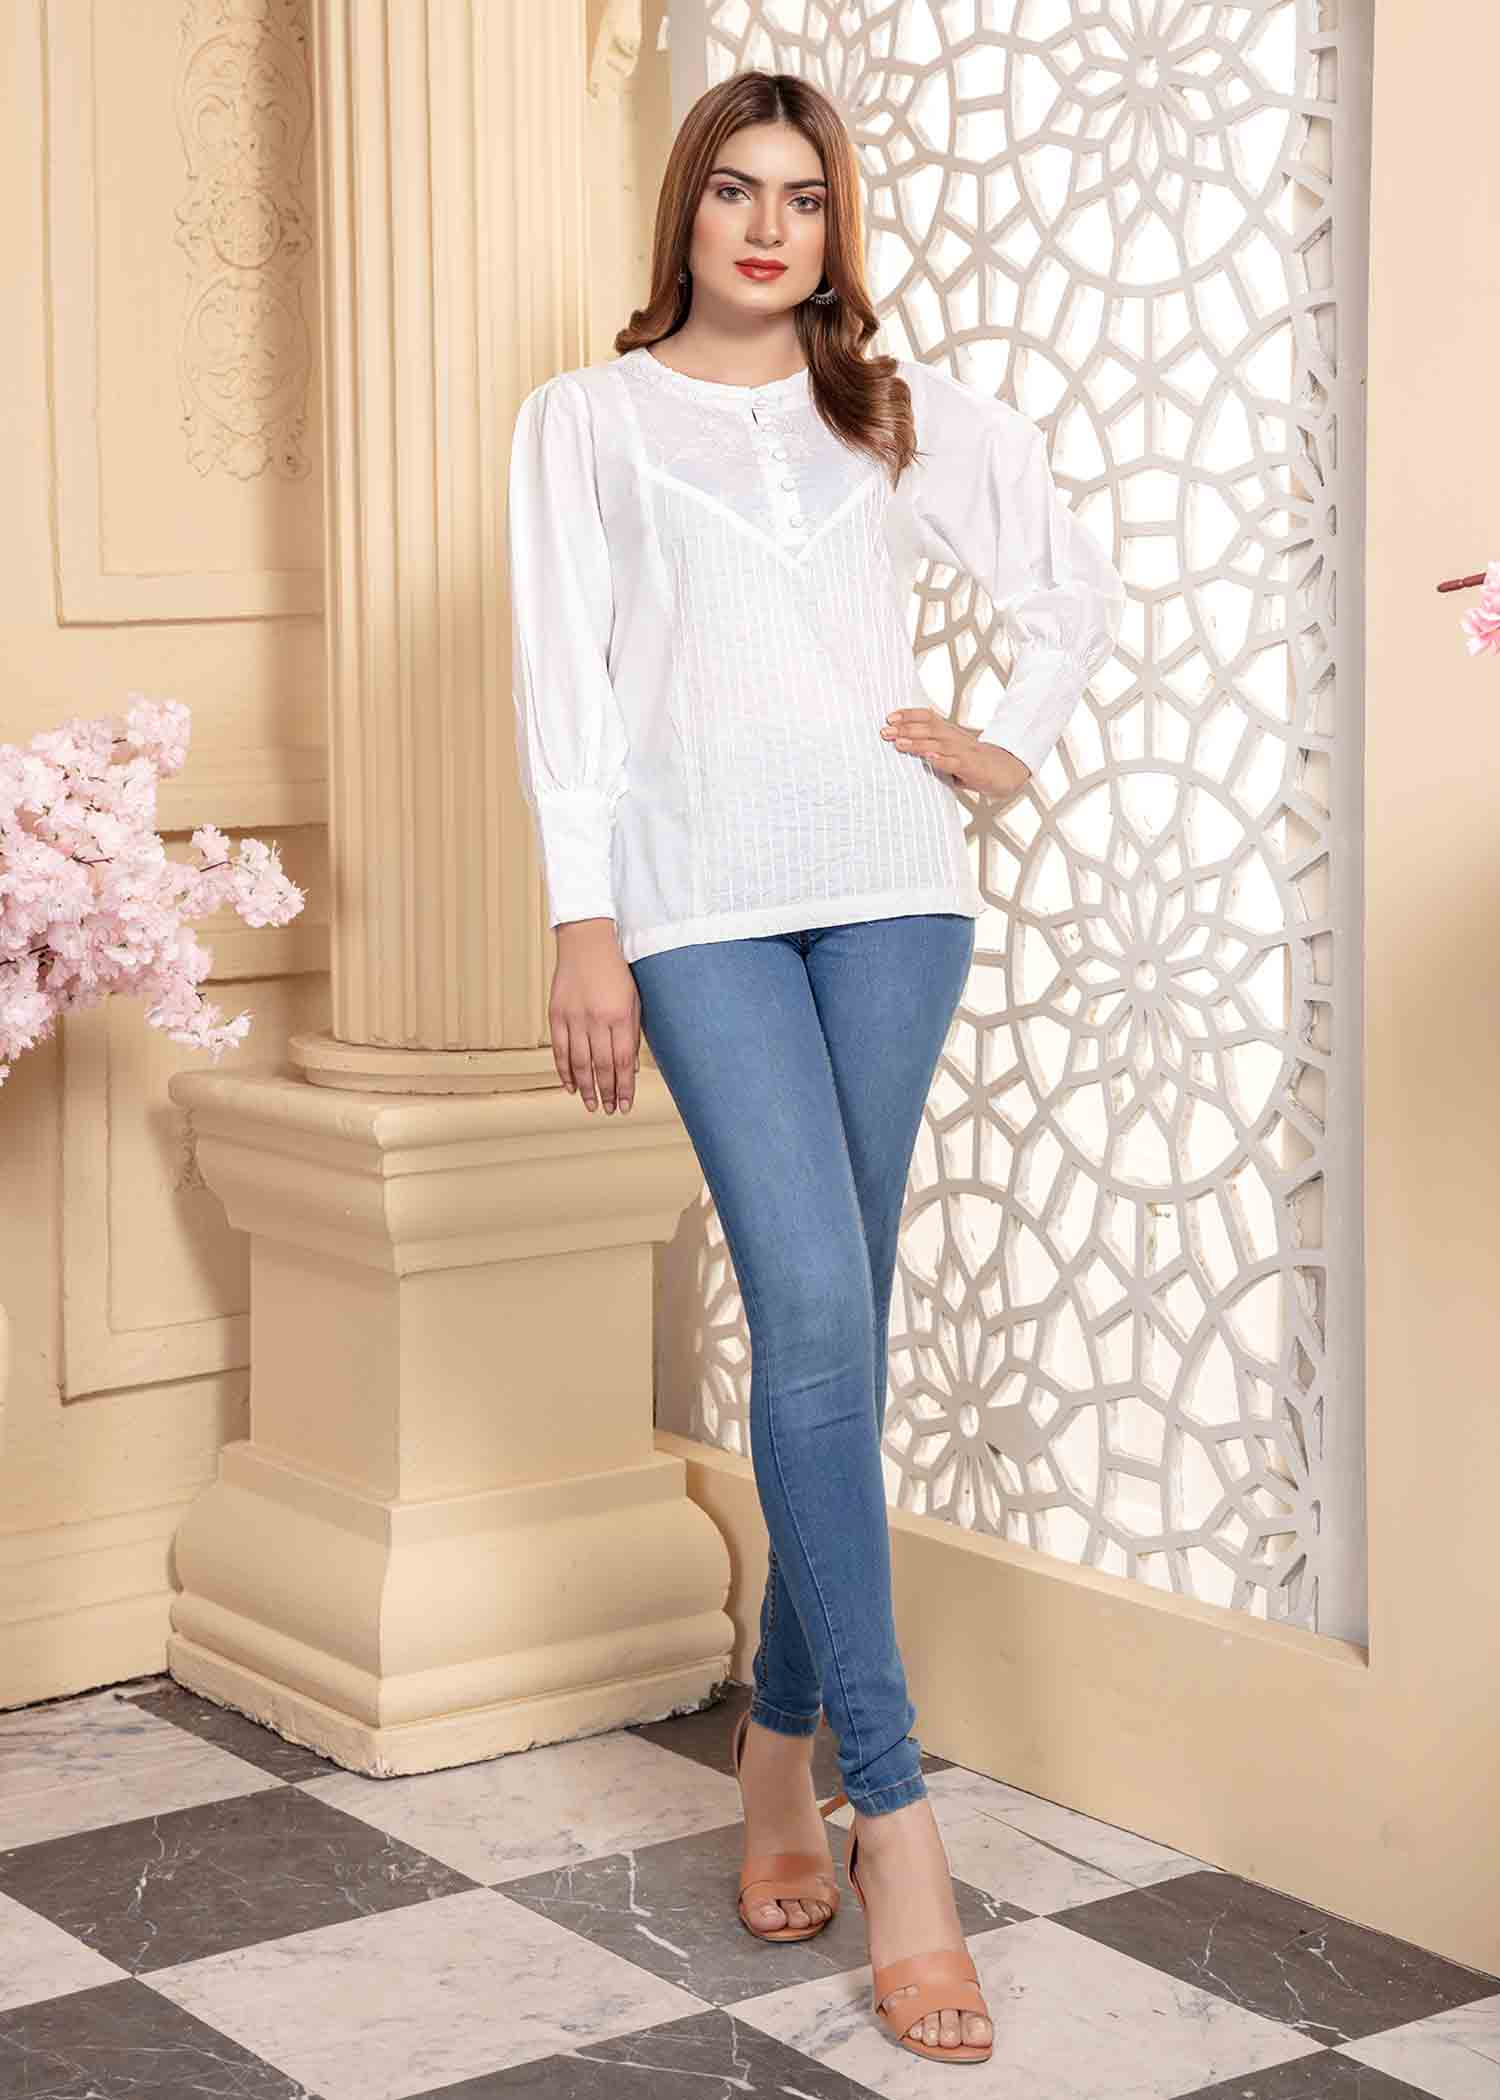 Embroidered Summer Top (VOL-01A-3-4)